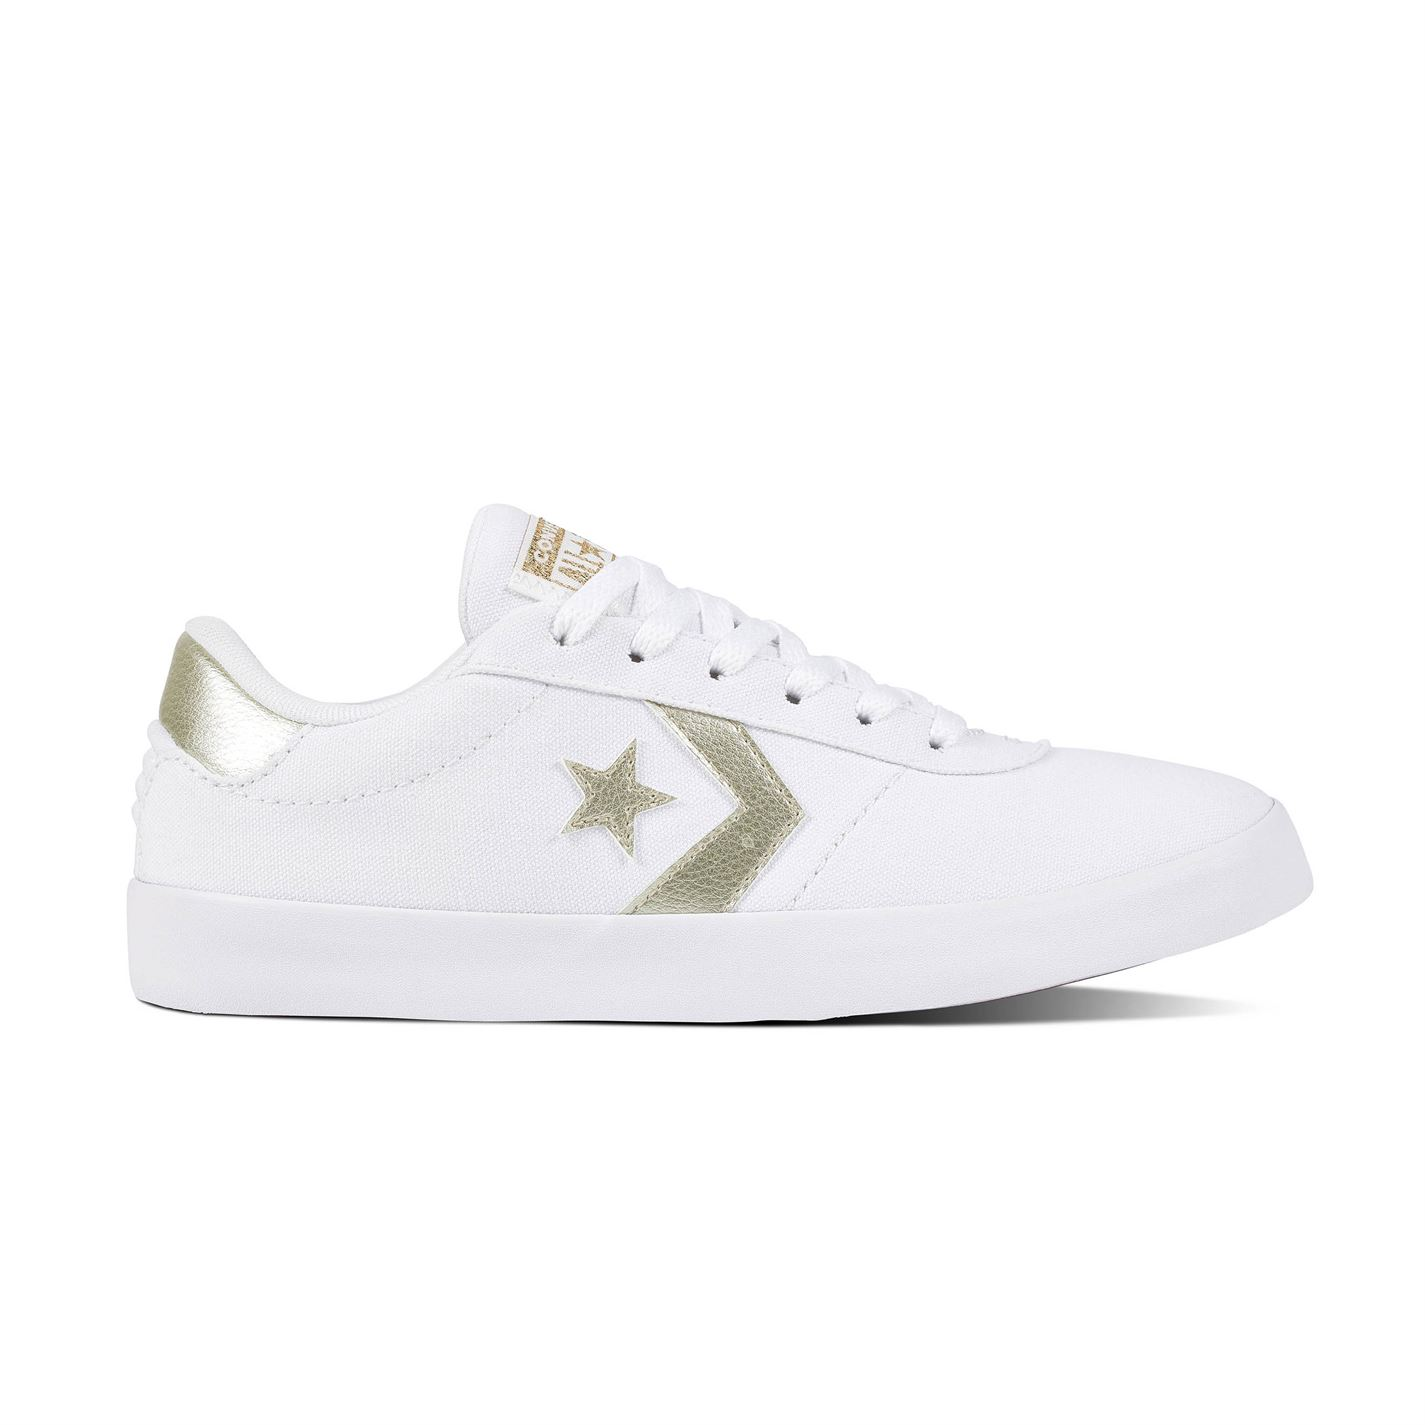 Converse Point Star Ox Shoes White Gold - Glami.sk 4bc607d731